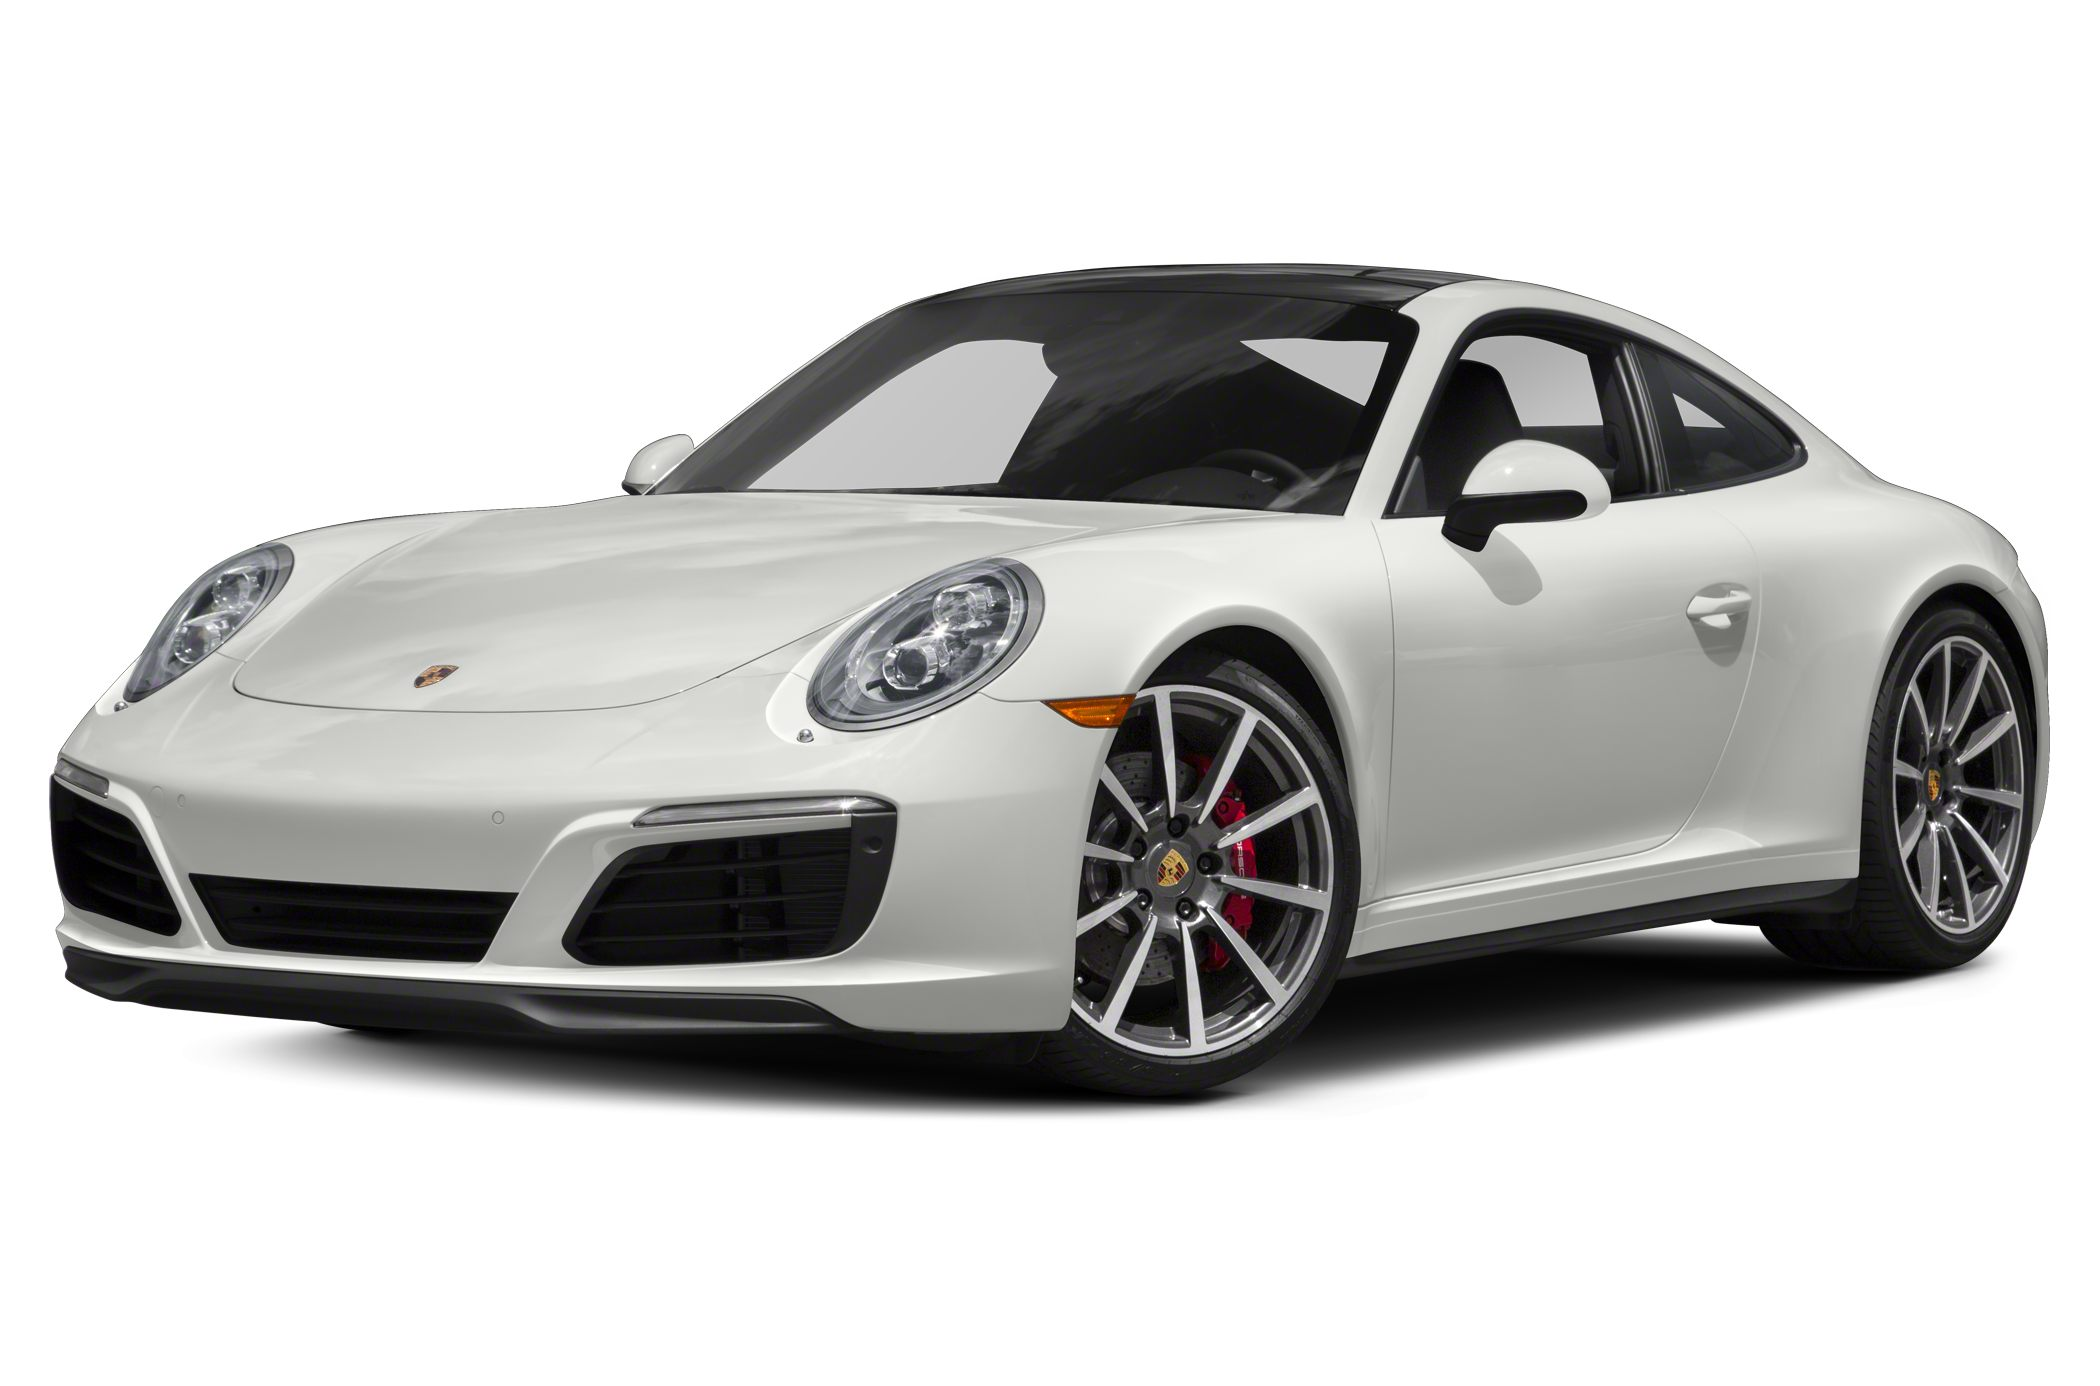 2019 Porsche 911 Carrera 4s 2dr All Wheel Drive Coupe Pricing And Options